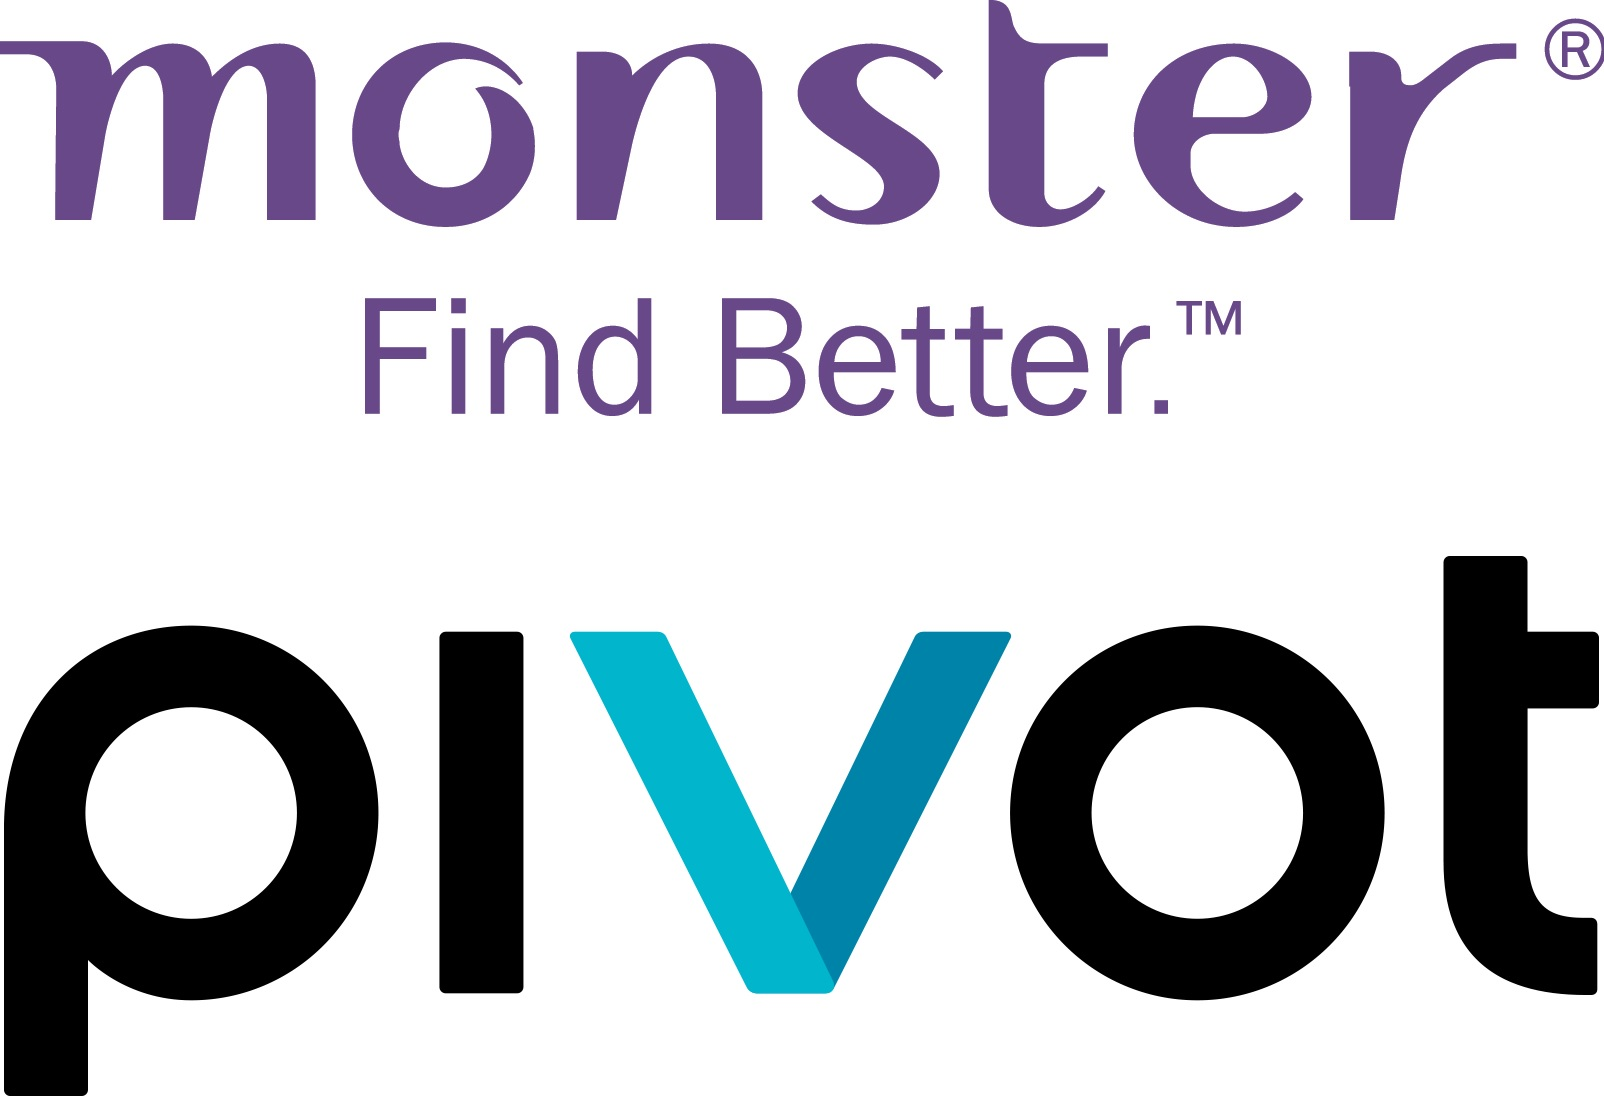 Pivot-Monster-Take-Part-Live-Find-Better